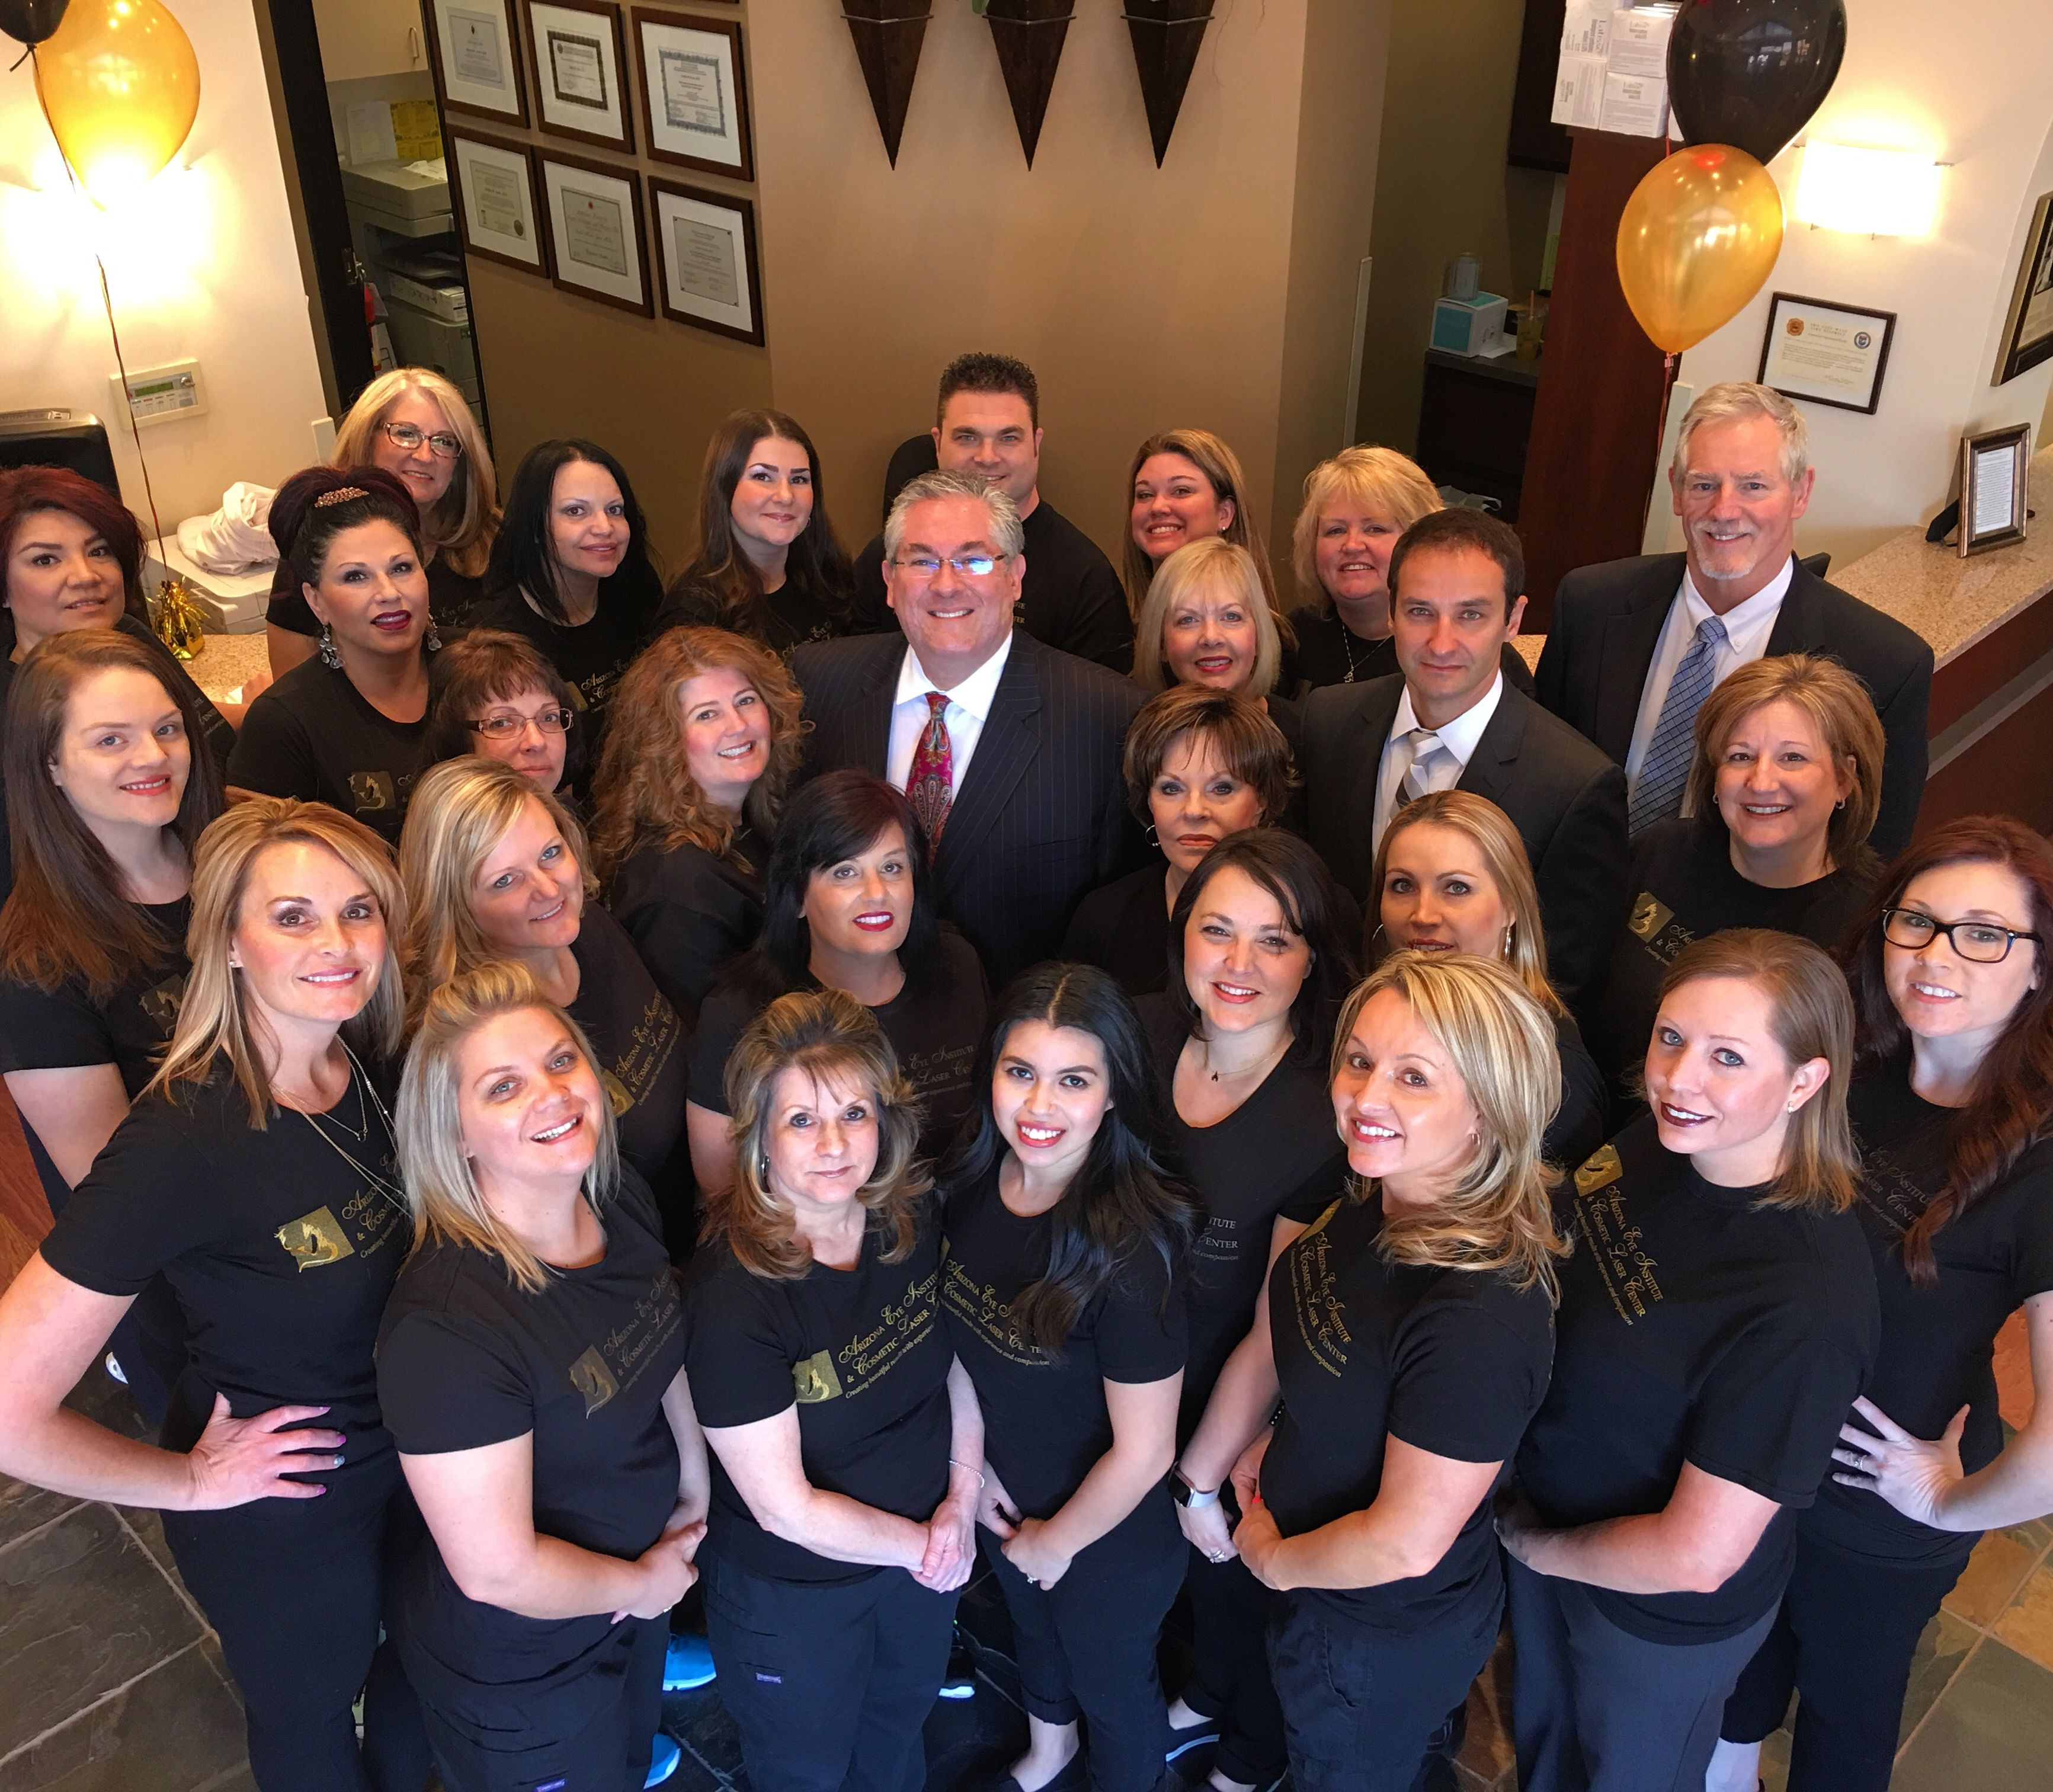 The doctors and staff, led by Dr. Emilio Justo, of the Arizona Eye Institute & Cosmetic Laser Center